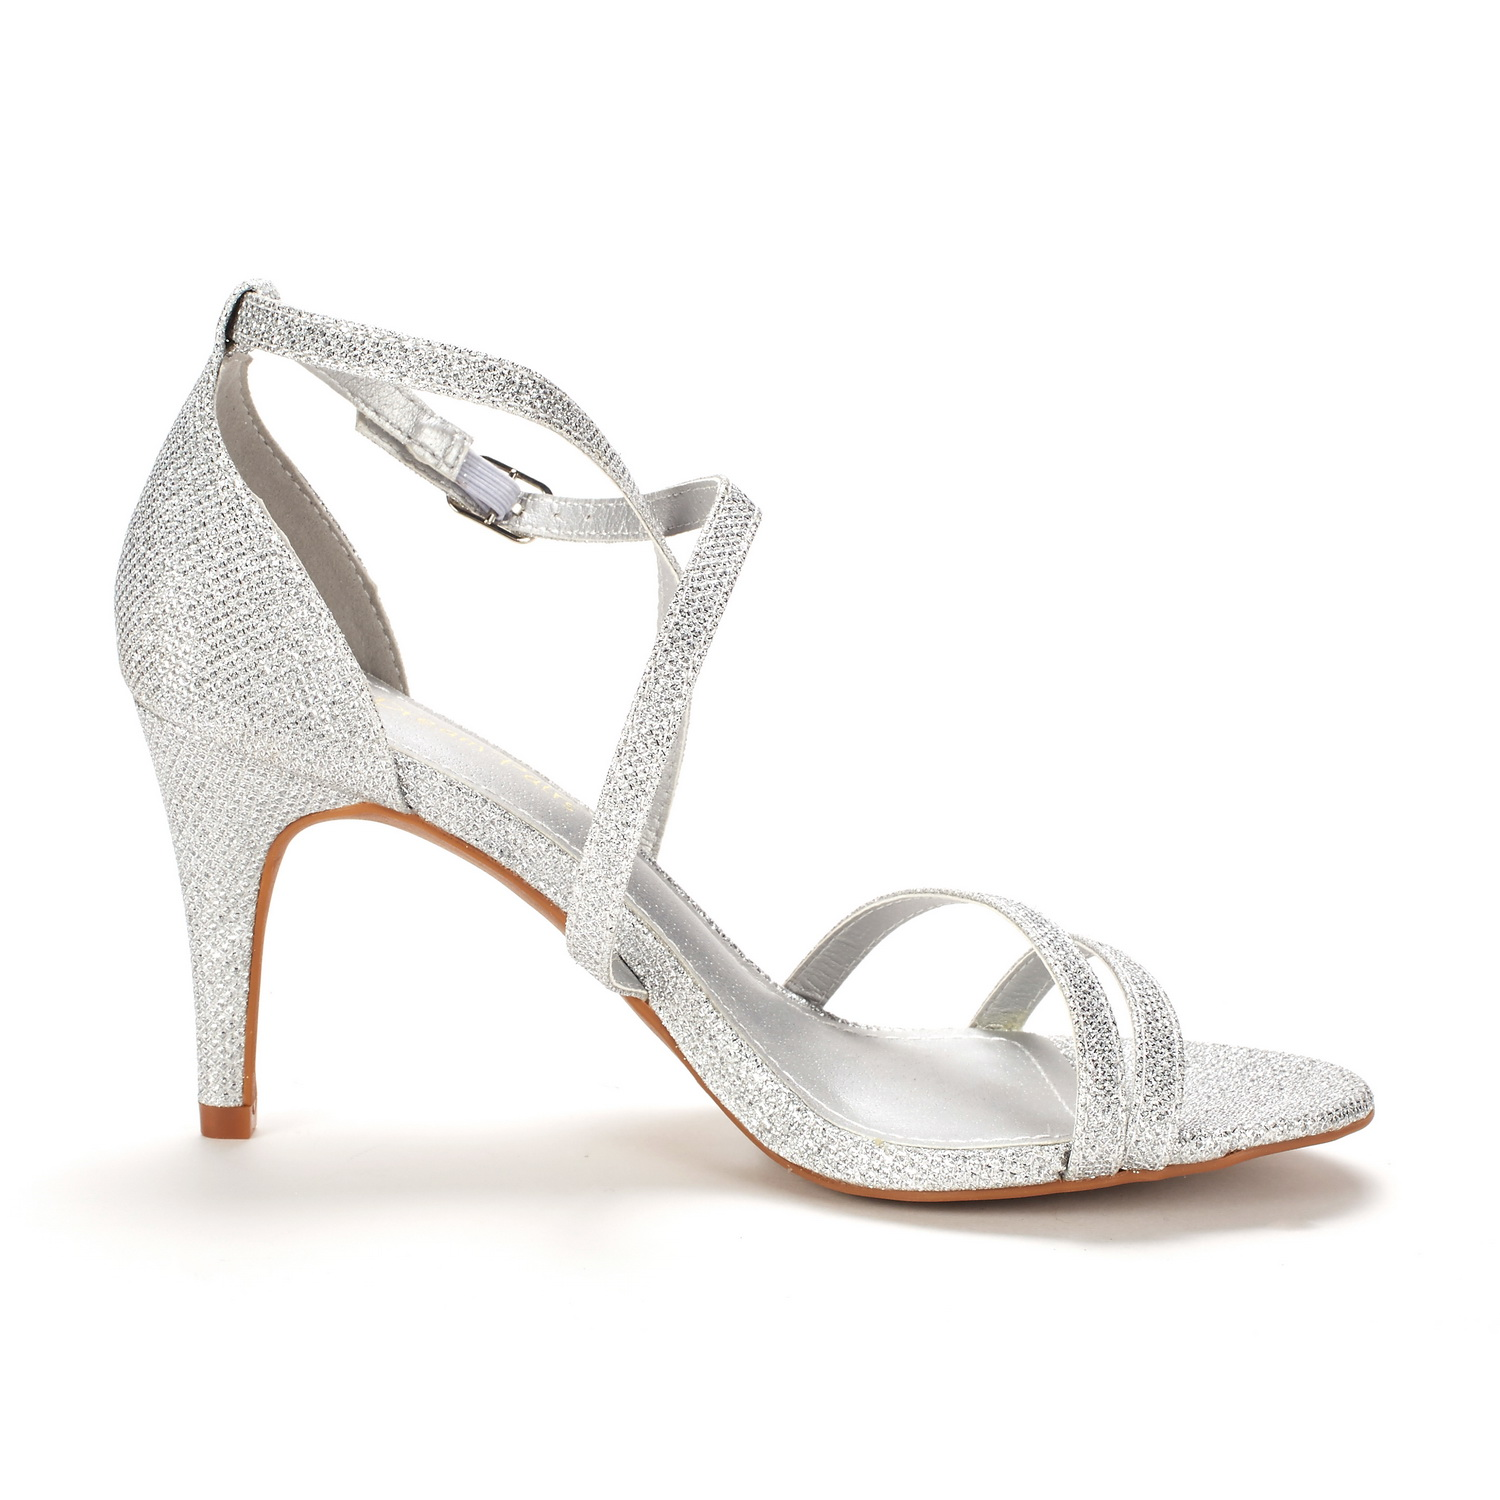 DREAM-PAIRS-Women-039-s-Ankle-Strap-High-Heel-Sandals-Dress-Shoes-Wedding-Party thumbnail 24